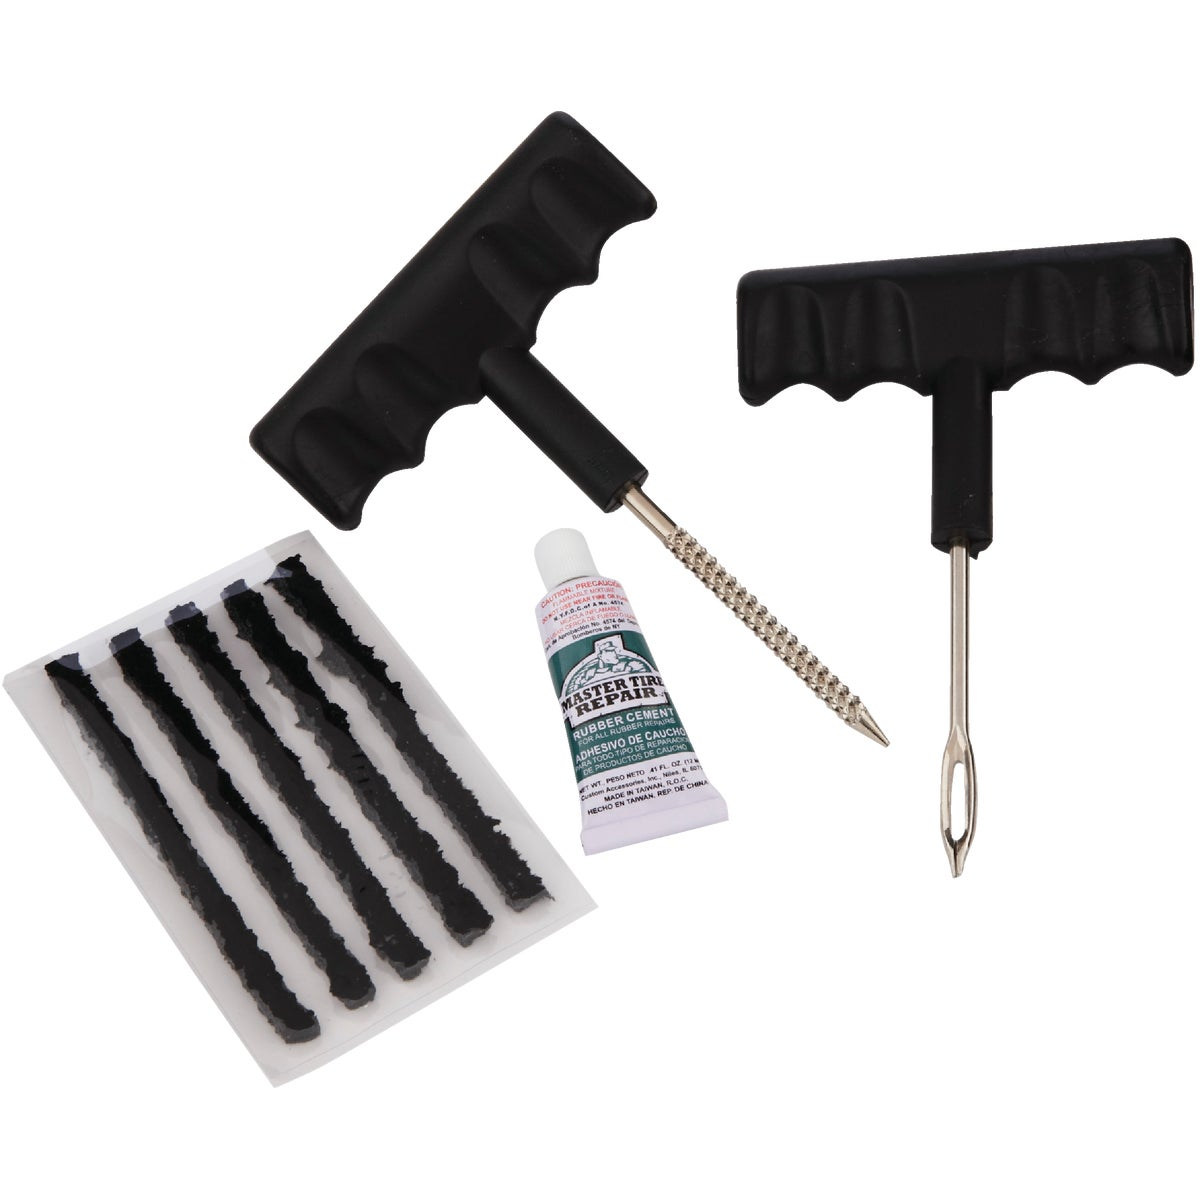 TUBELESS TIRE REPAIR KIT - 21000 by Custom Accessories